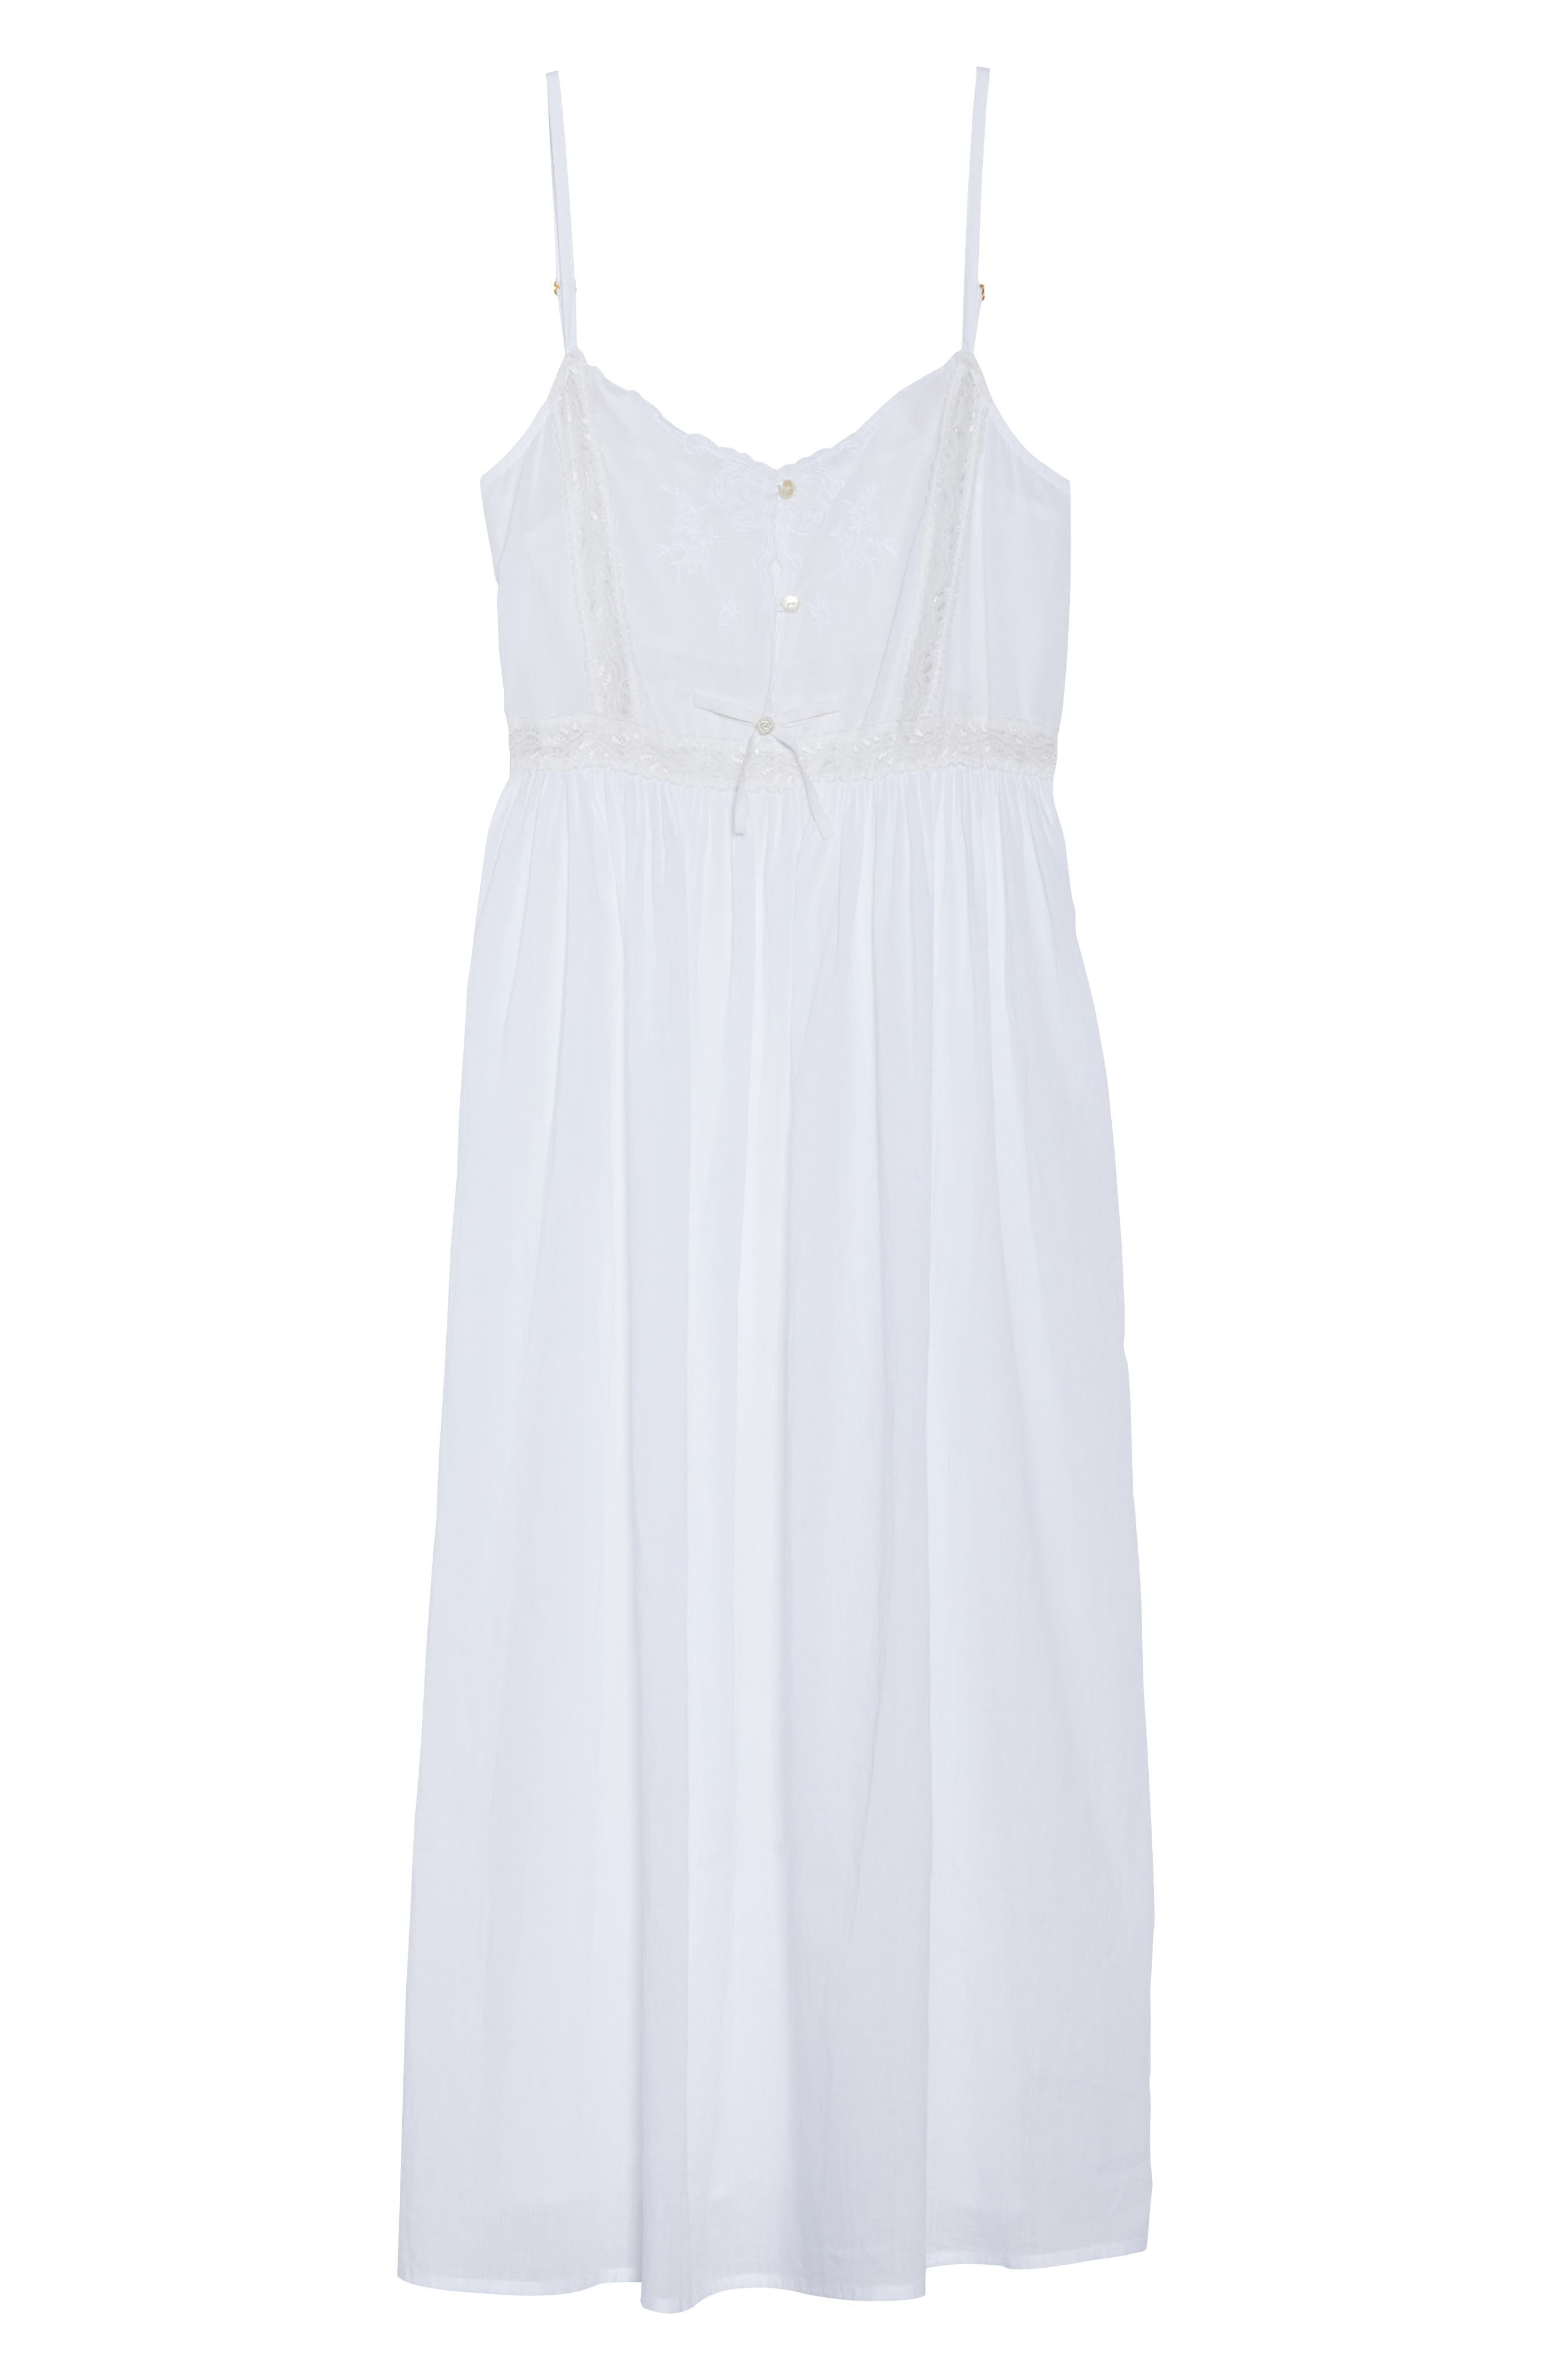 Lace Trim Nightgown,                             Alternate thumbnail 6, color,